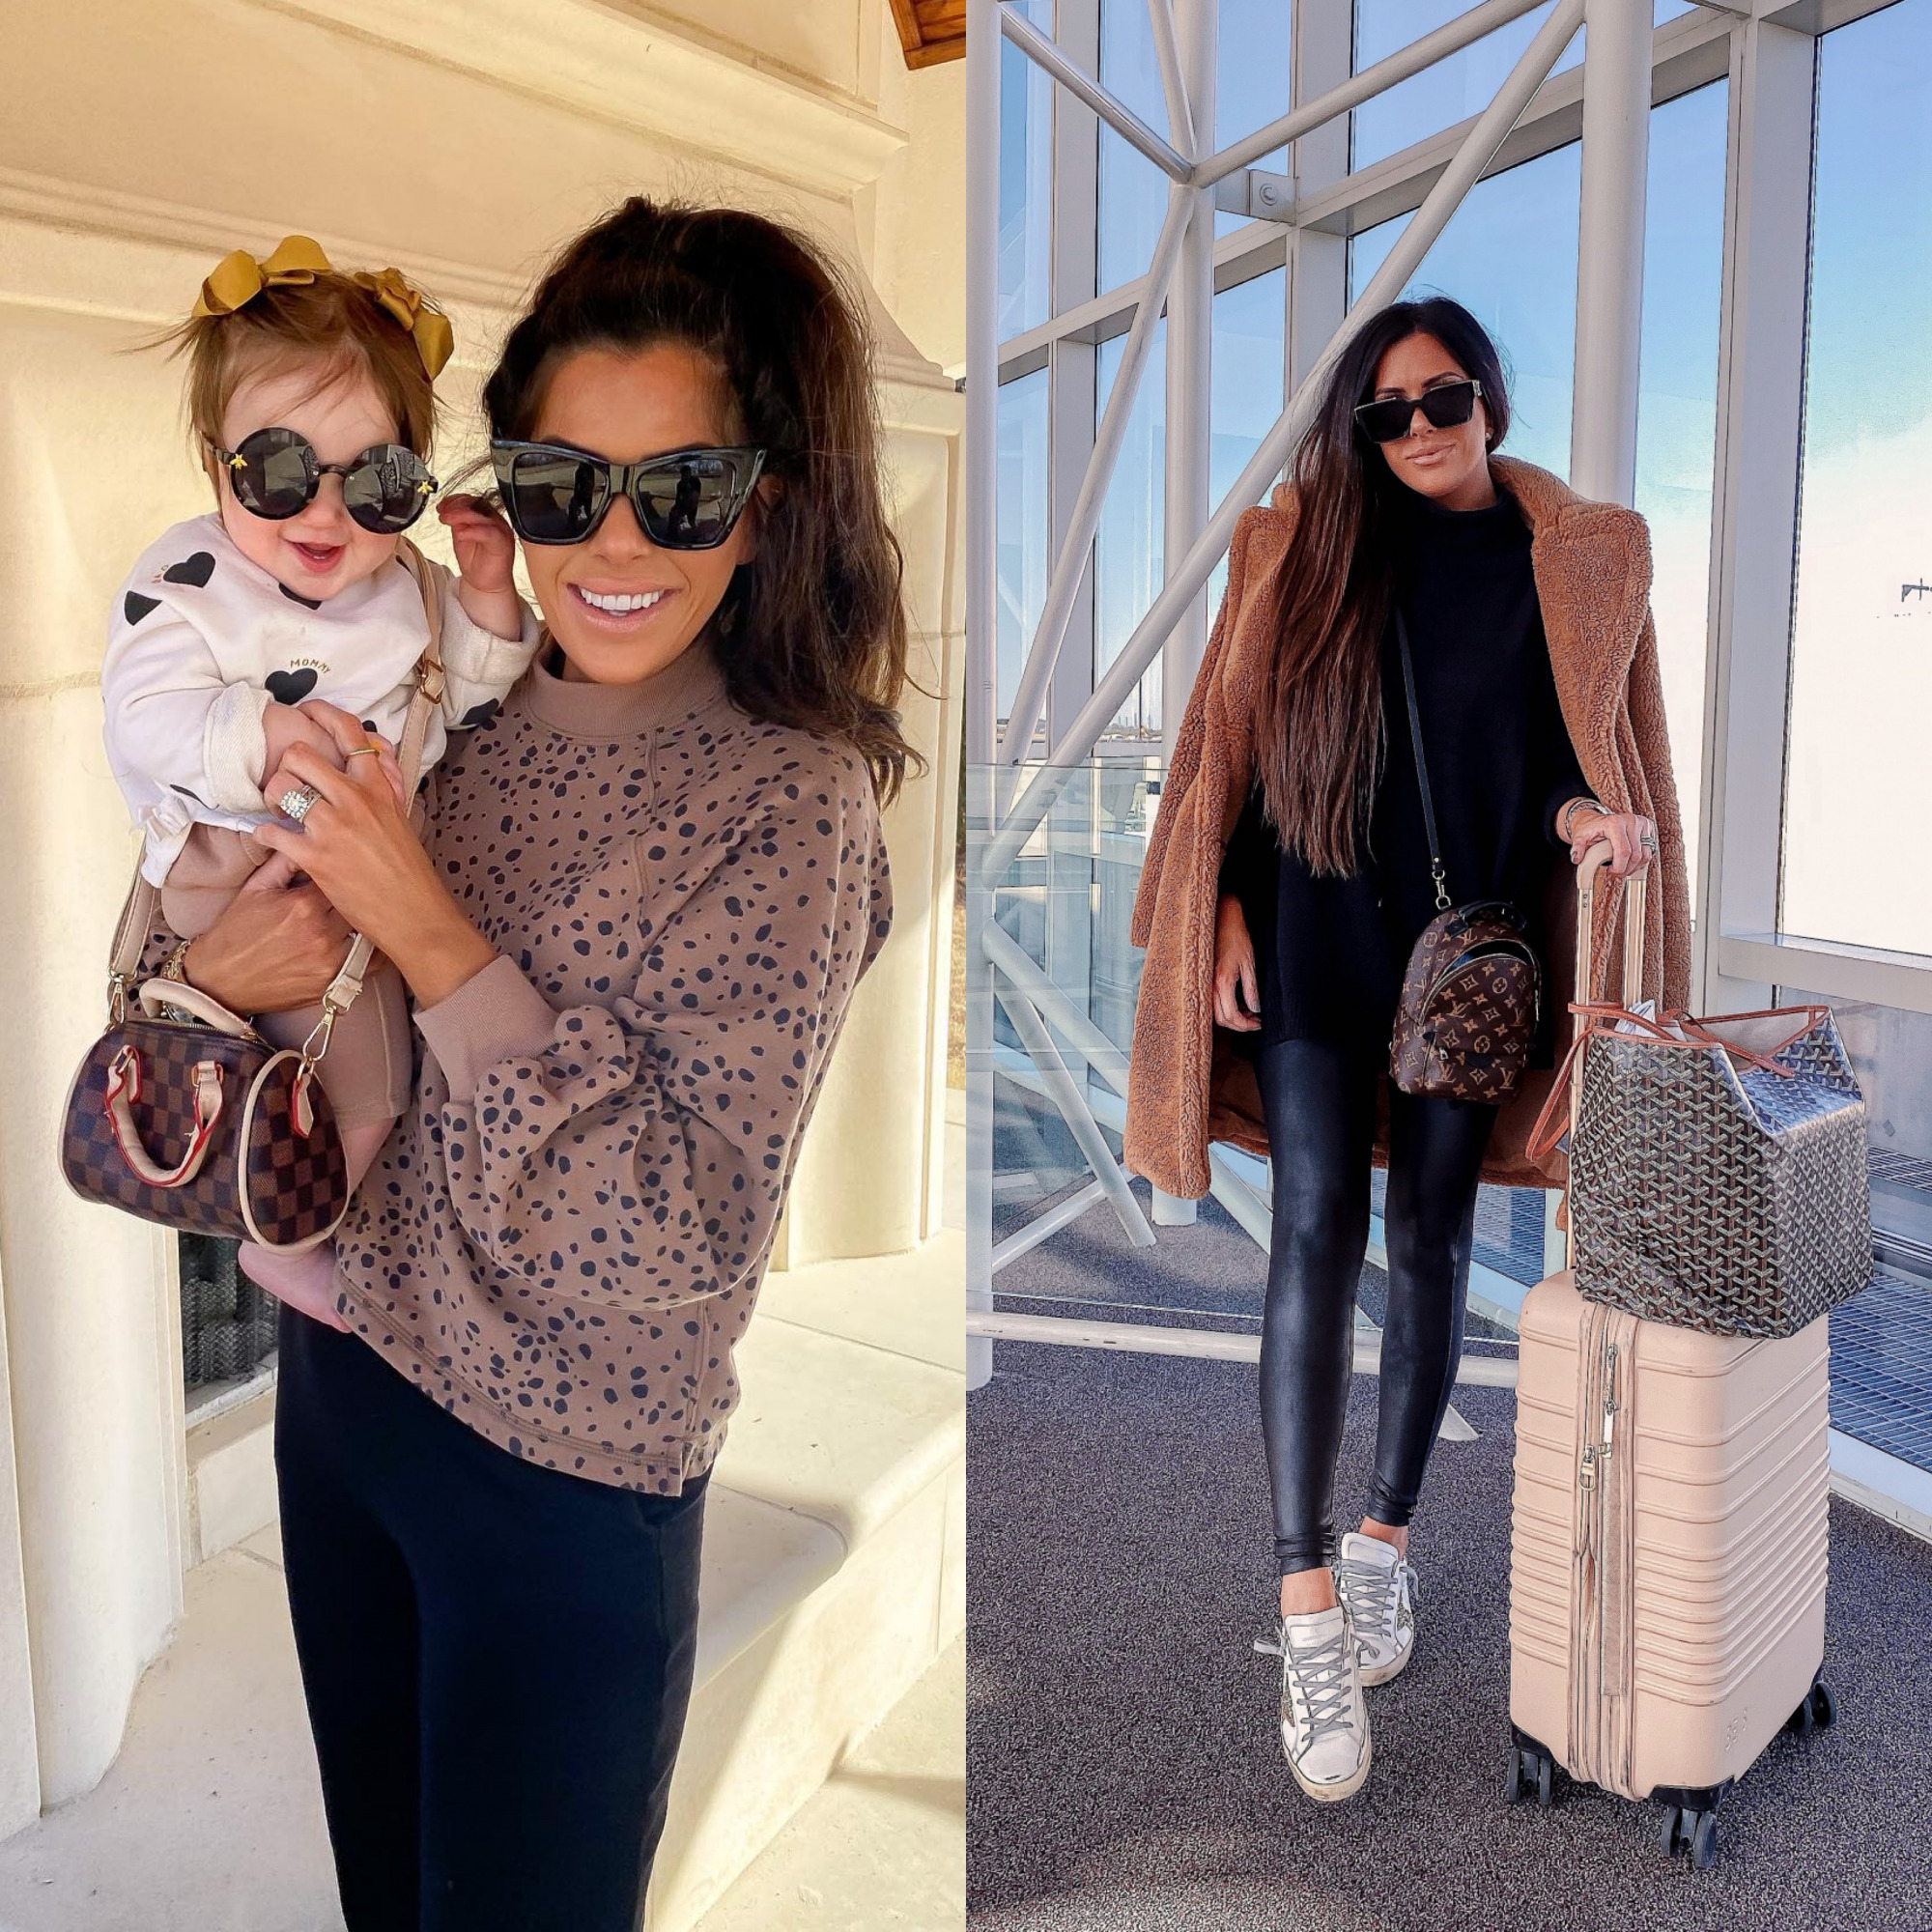 LTK day fall 2020, fall fashion outfit ideas pinterest 2020, emily ann gemma3 |  Sale Alert by popular US fashion blog, The Sweetest Thing: collage image of Emily Gemma wearing a leopard sweatshirt, black leather leggings, and a sherpa jacket.